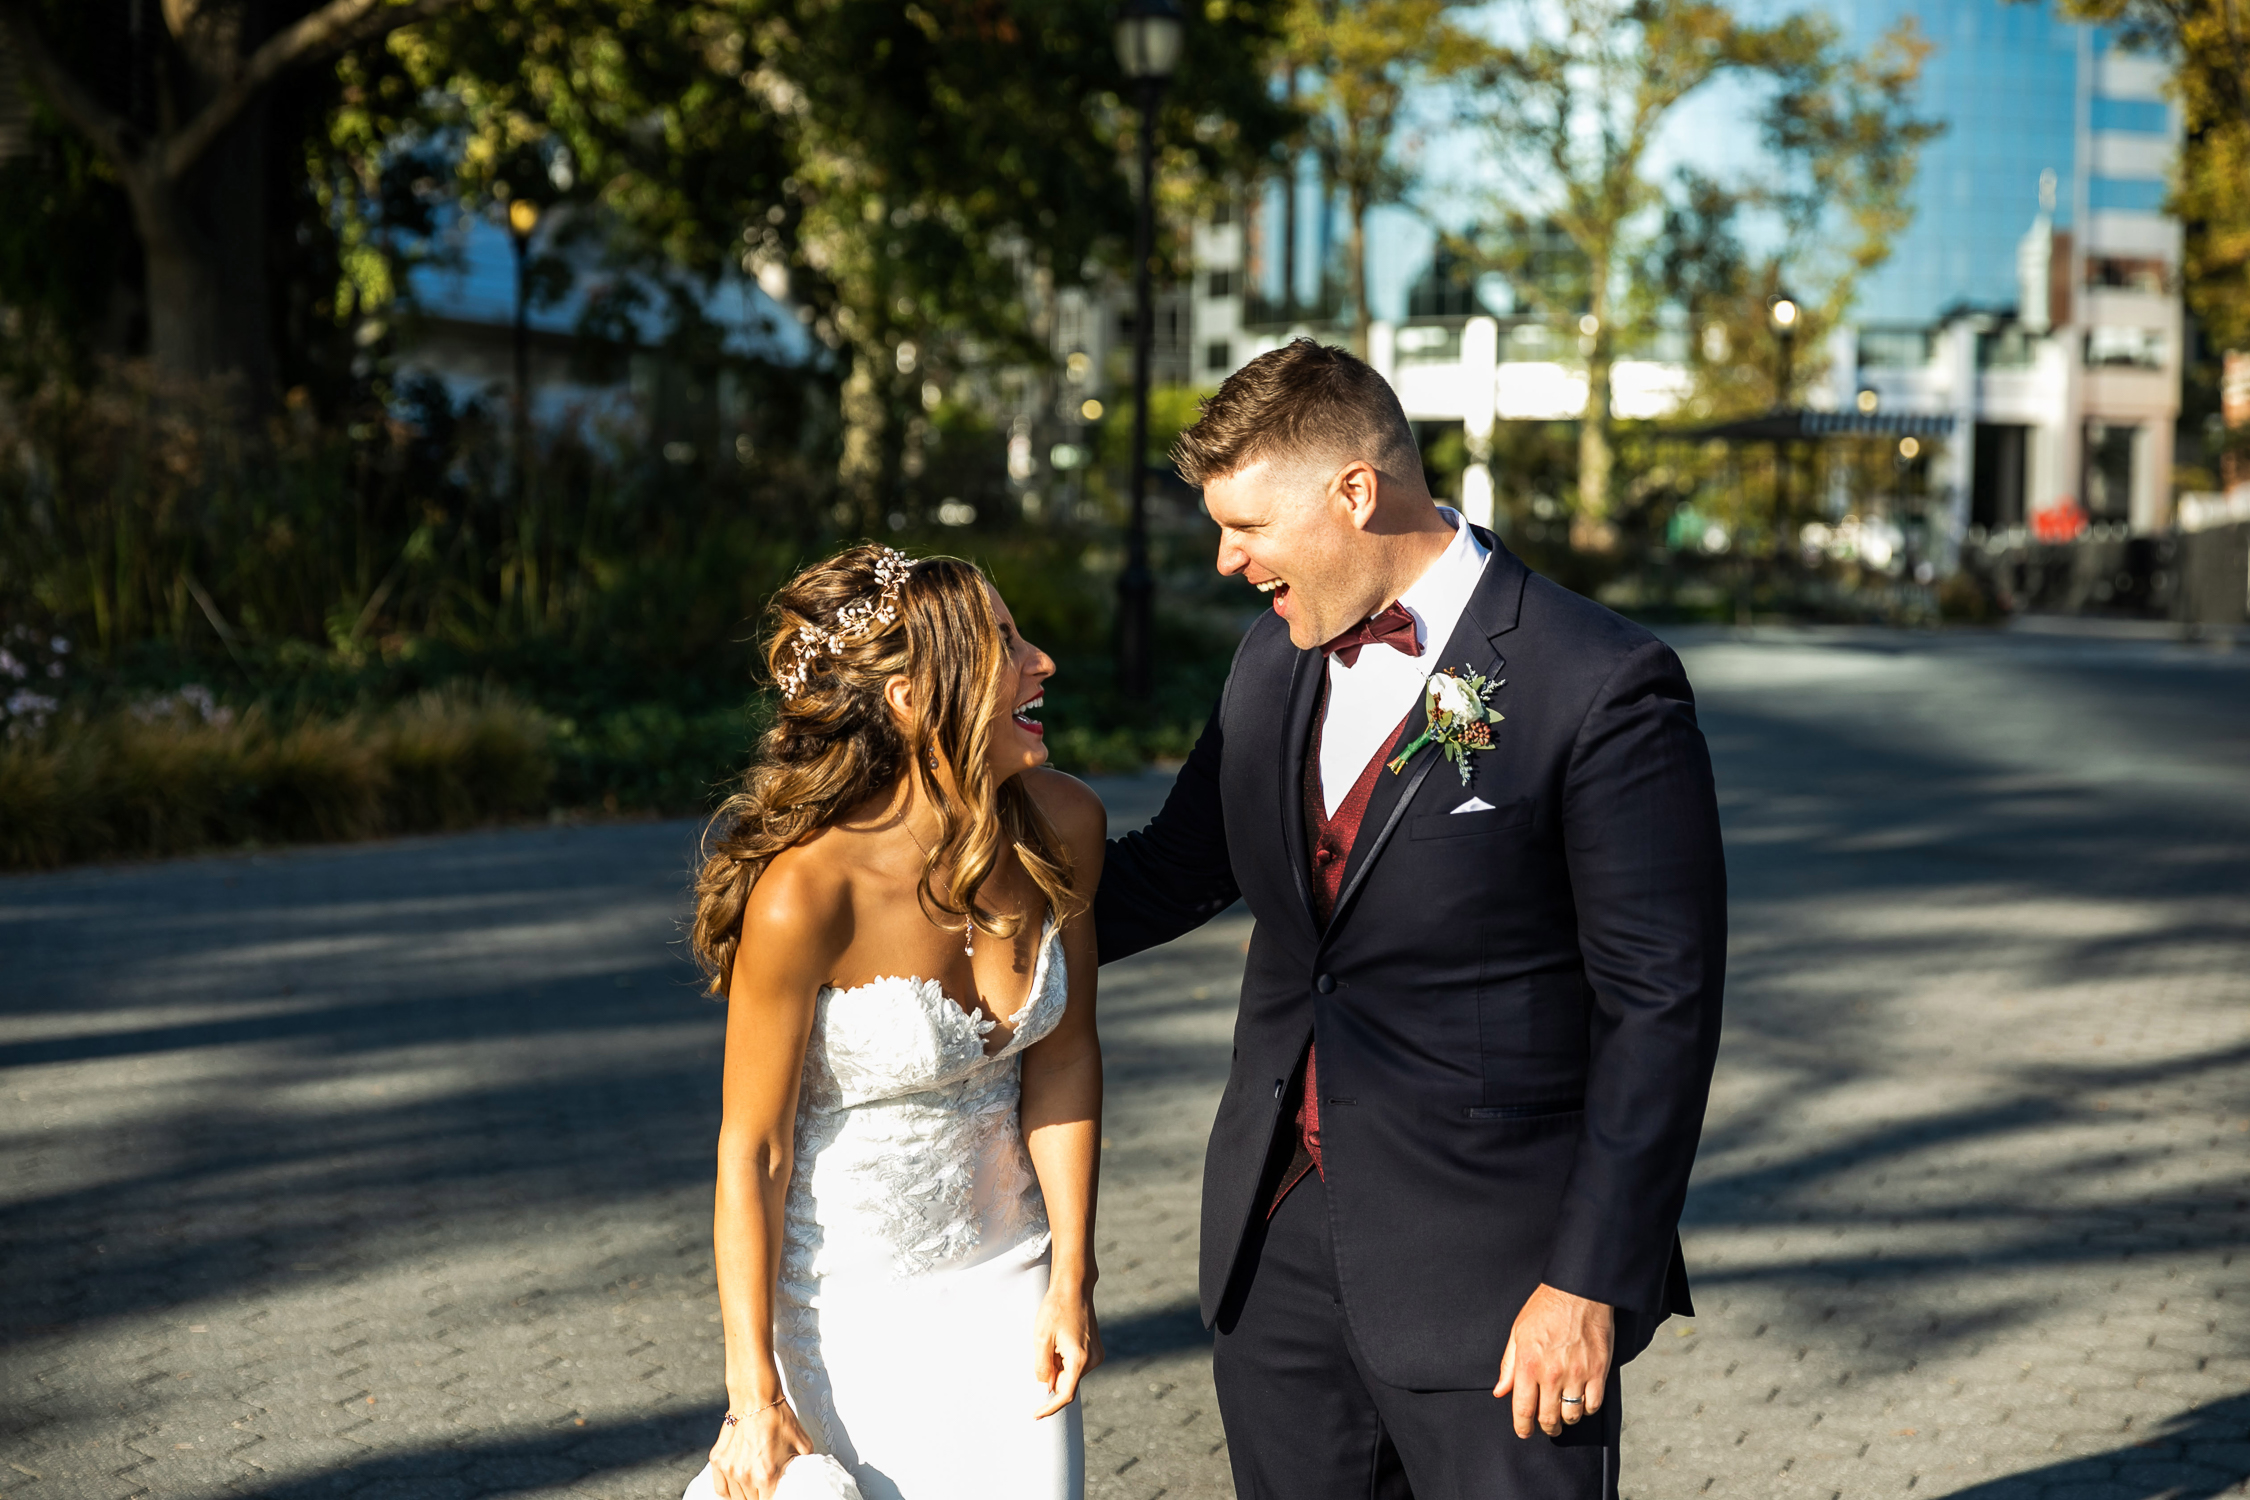 Emma_Cleary_Photo_and_Video_wedding_photos_0014